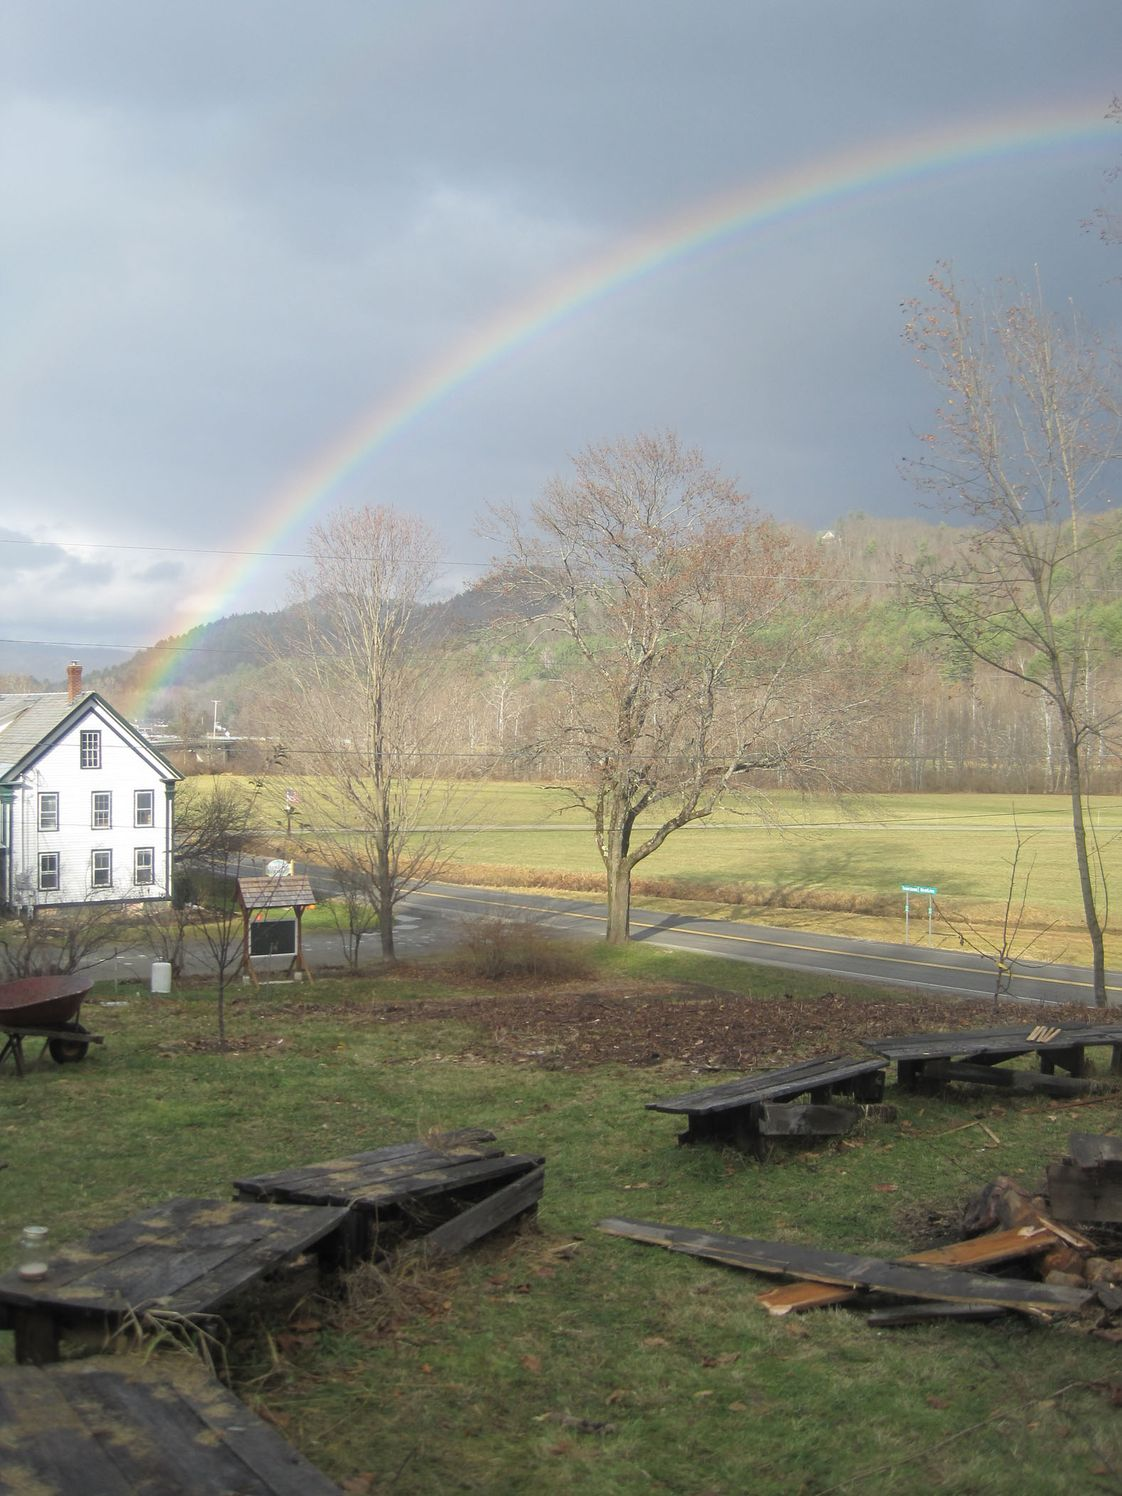 Kindle Farm School Photo #1 - A beautiful day at the school